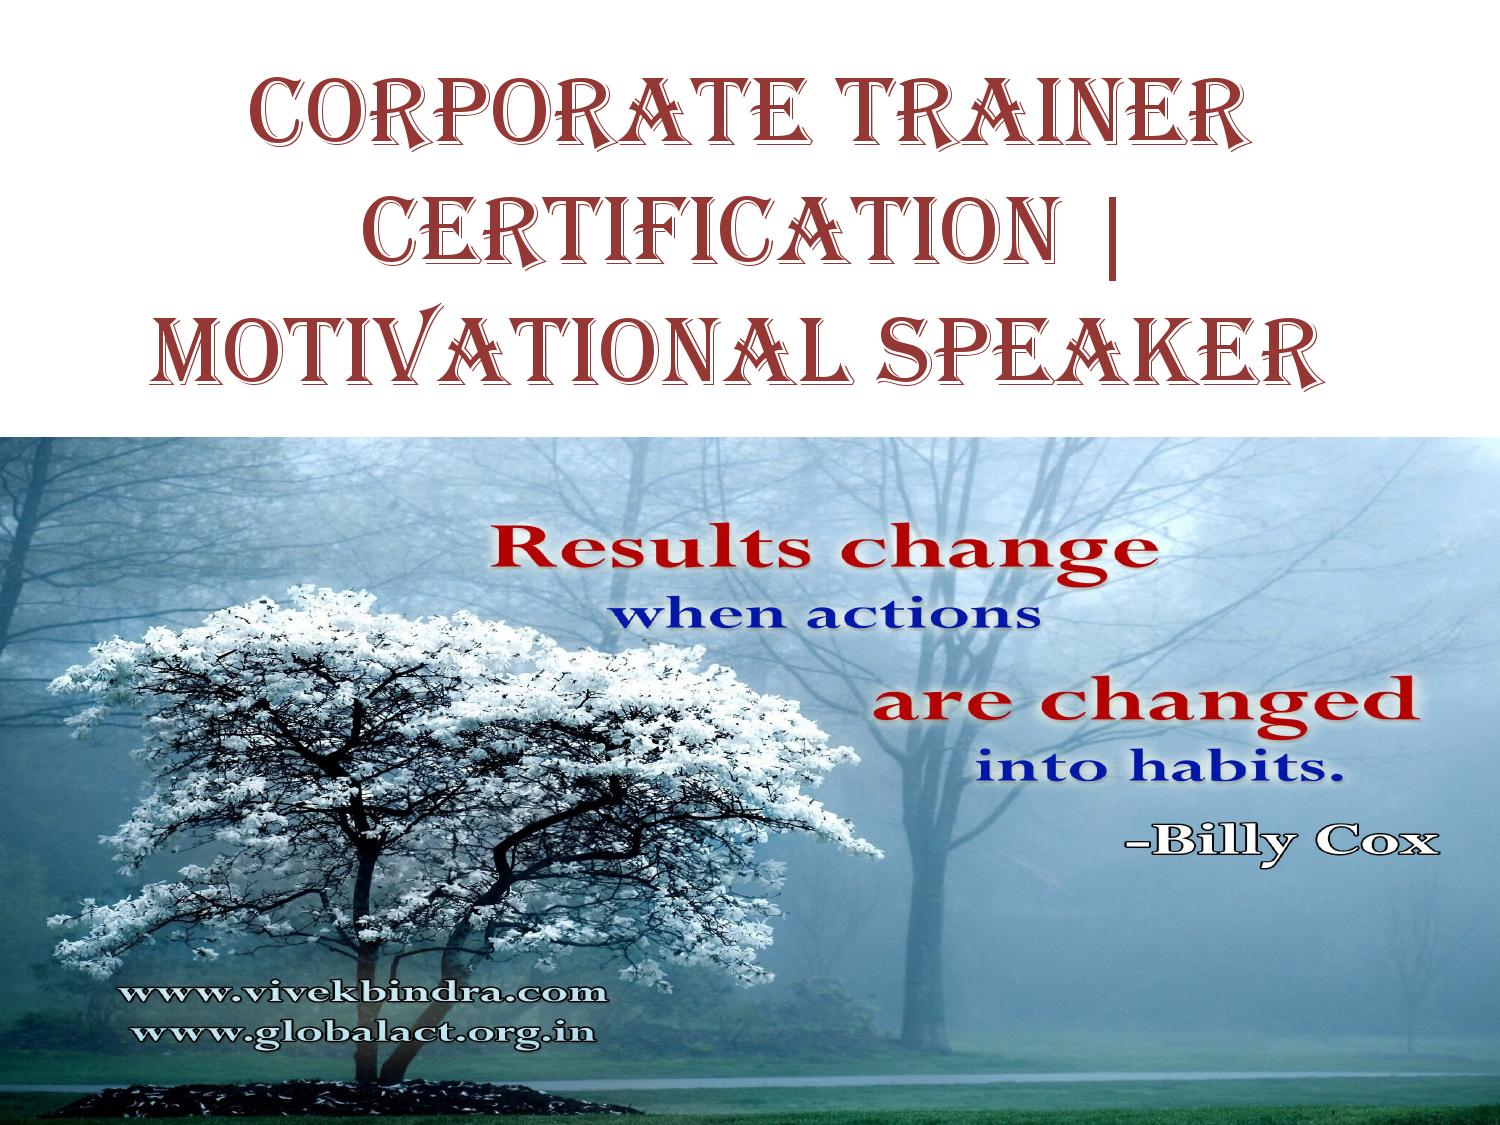 Corporate trainer certification motivational speaker by amit1raj corporate trainer certification motivational speaker by amit1raj issuu 1betcityfo Gallery